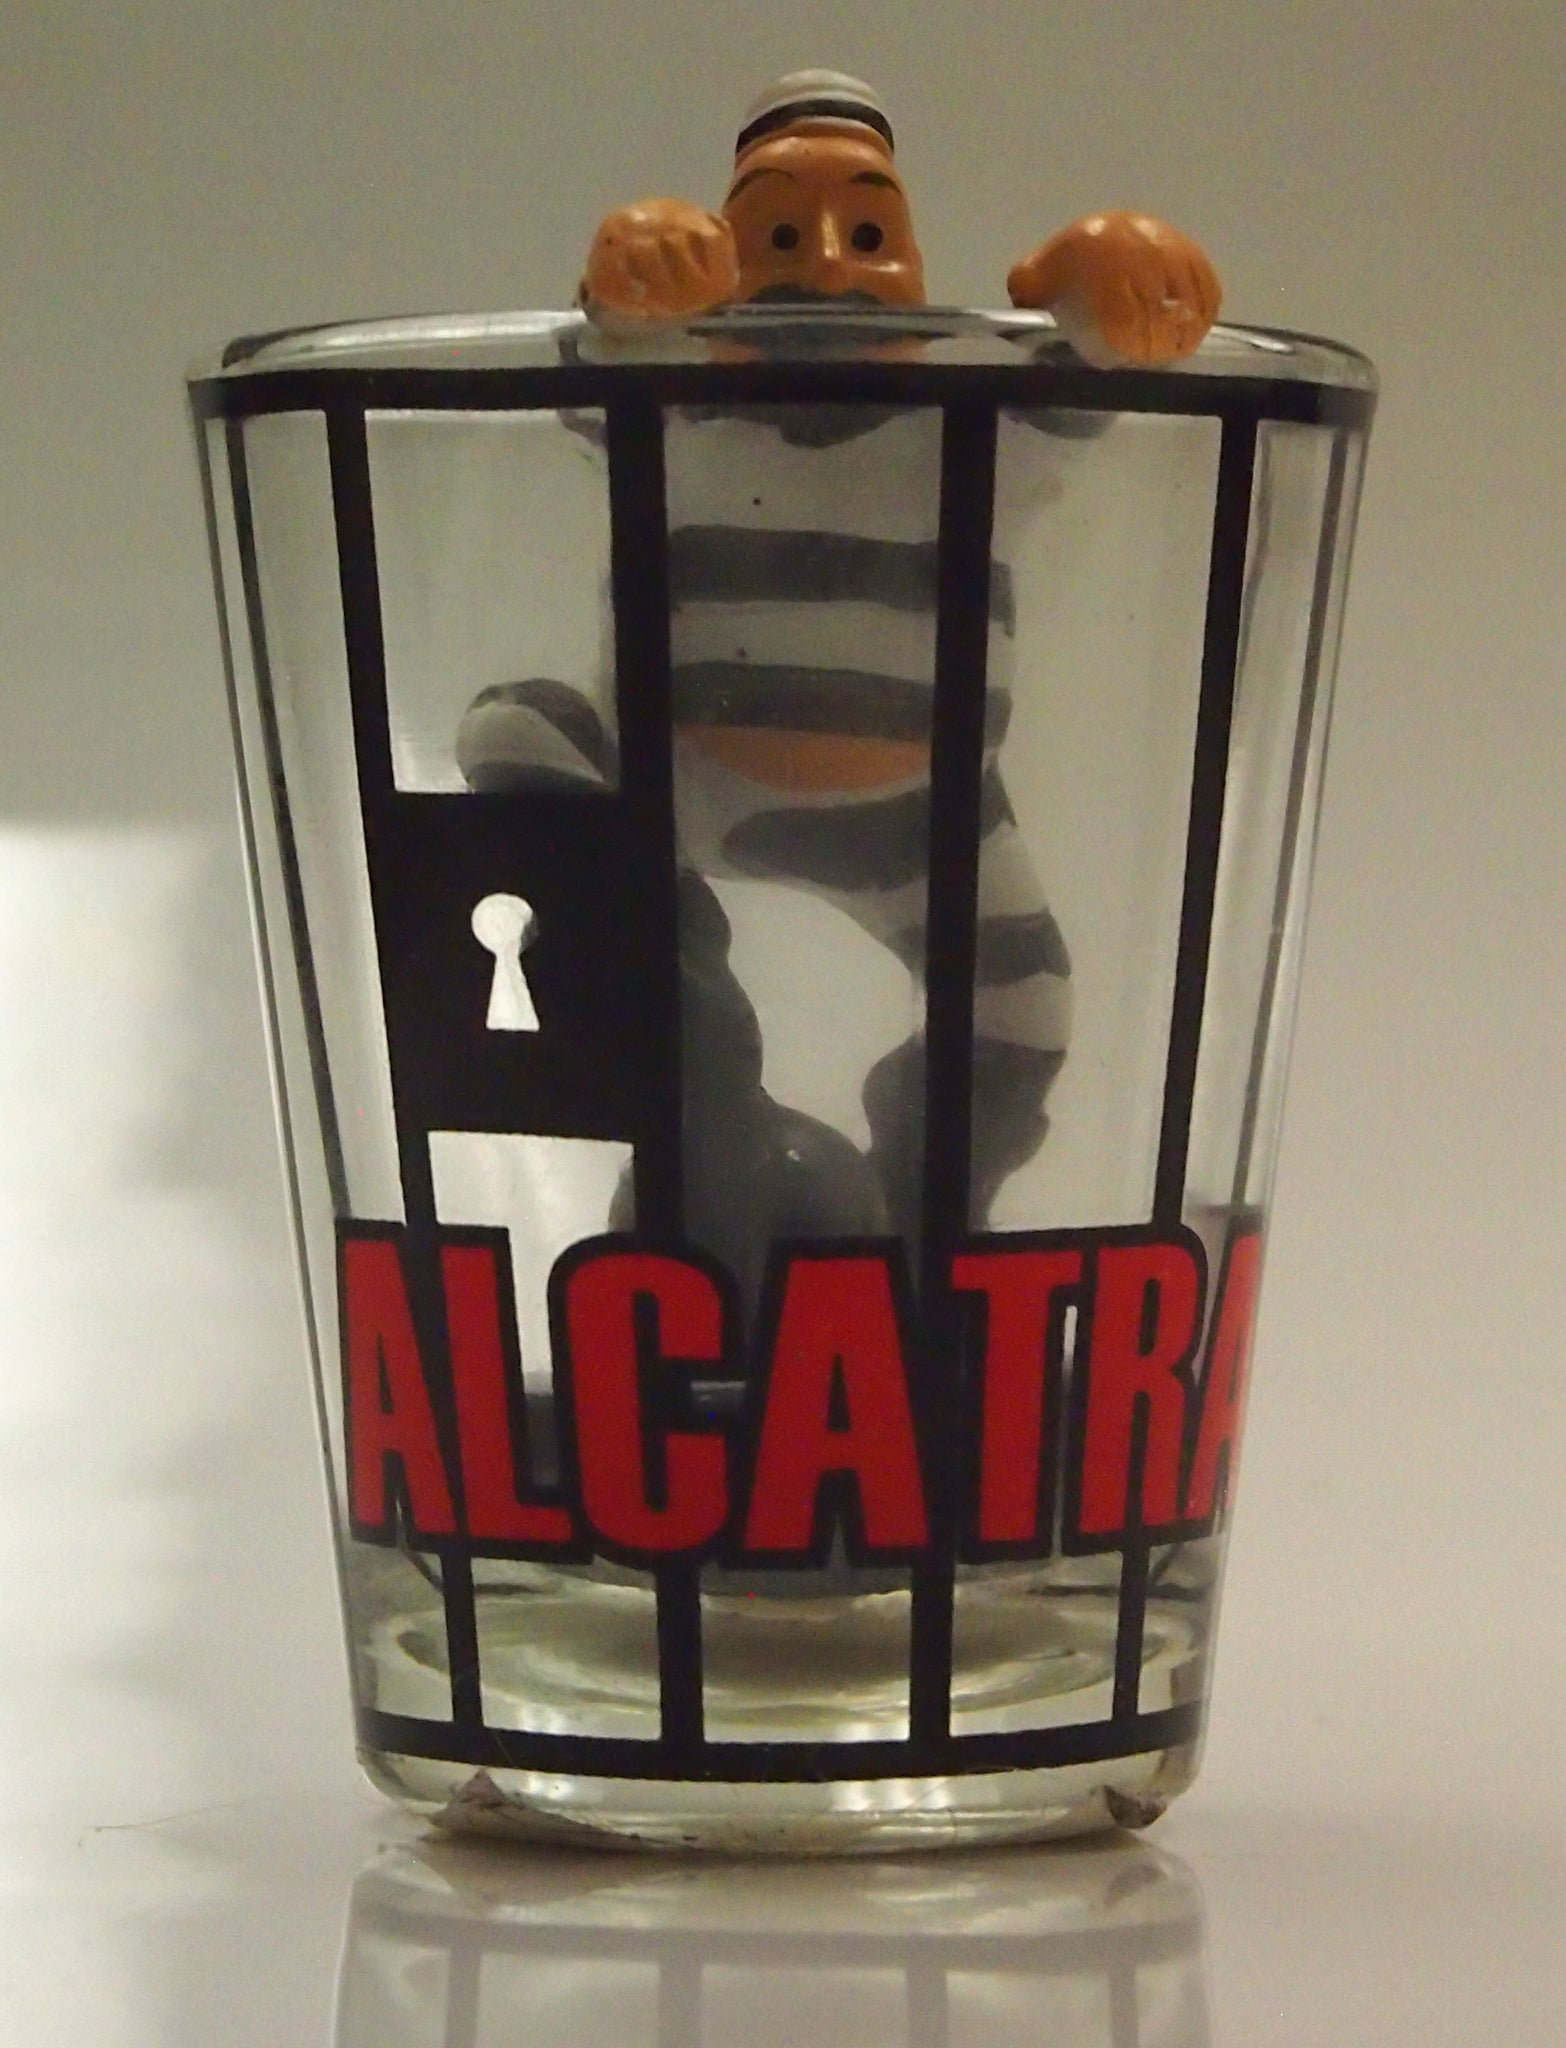 Shot Glass with escaping prisoner